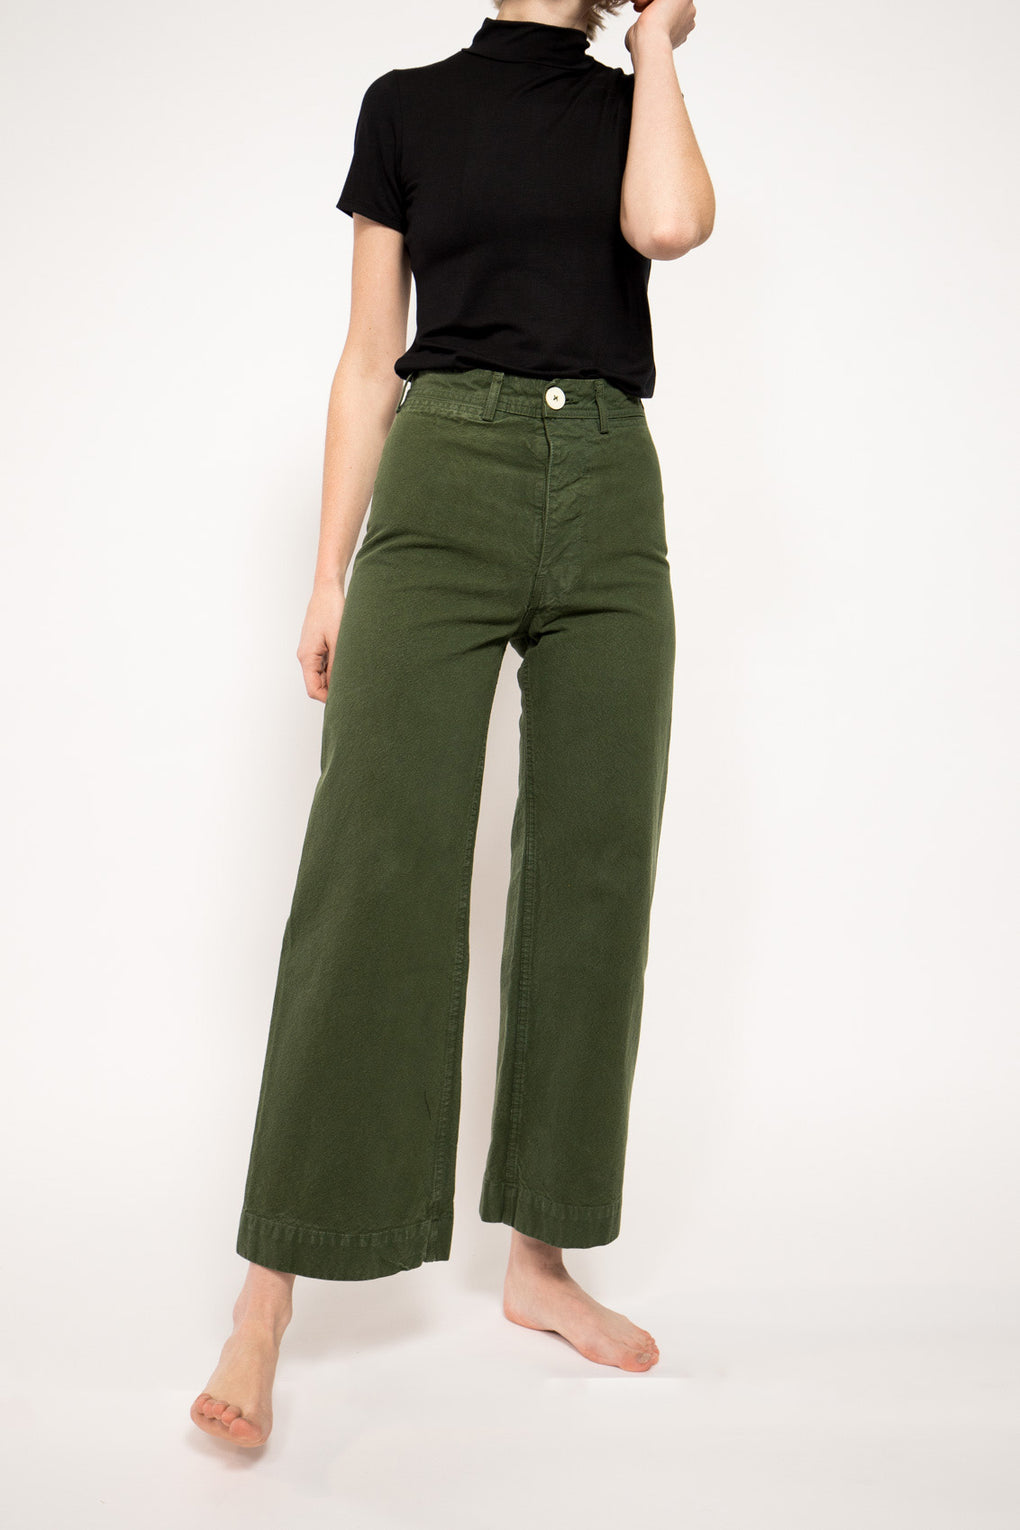 Sailor Pants in Olive